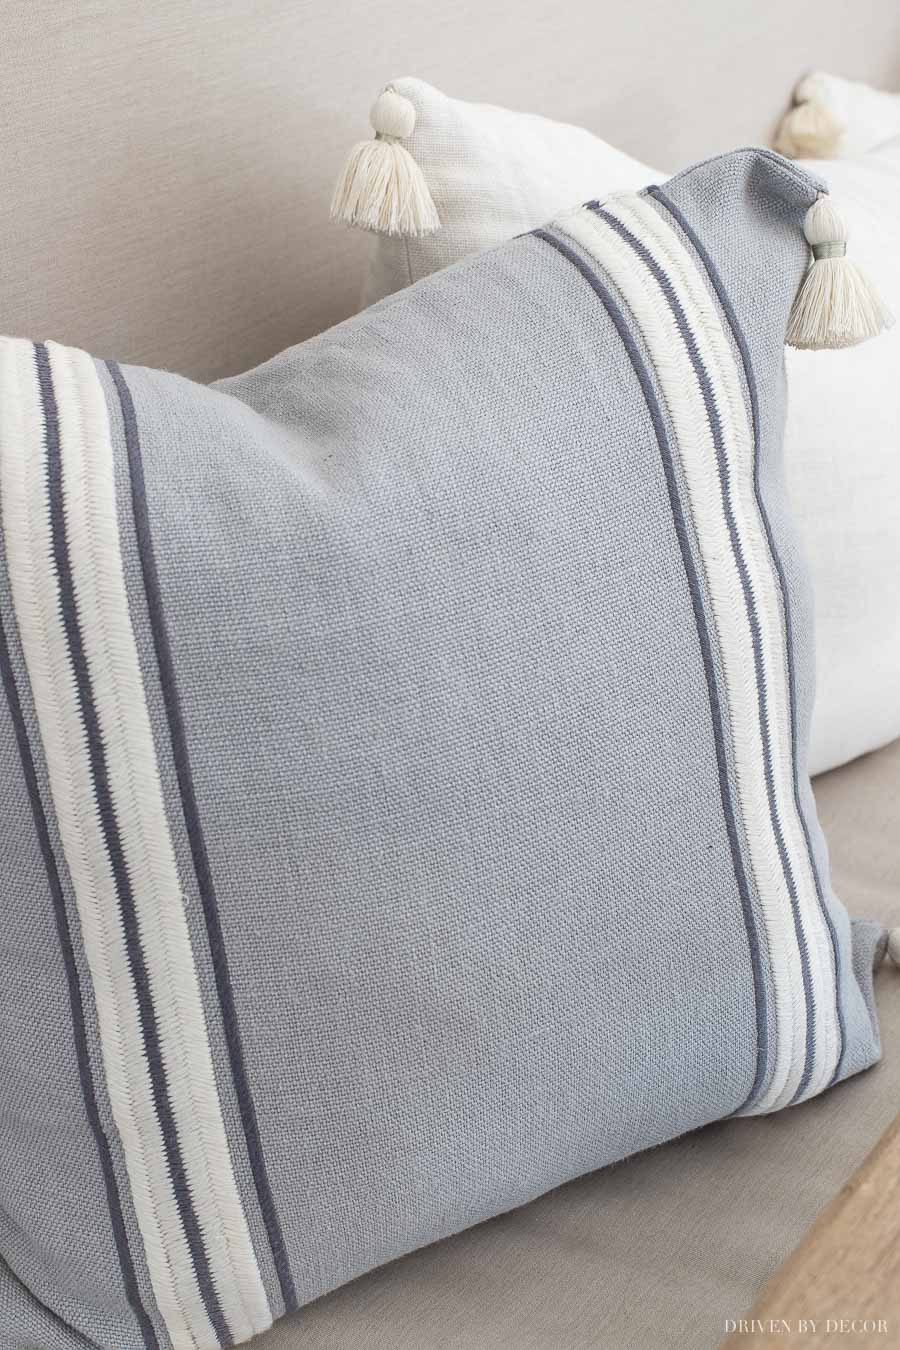 Gorgeous striped tassel end pillow covers in the prettiest shade of blue/gray - loving these for spring!